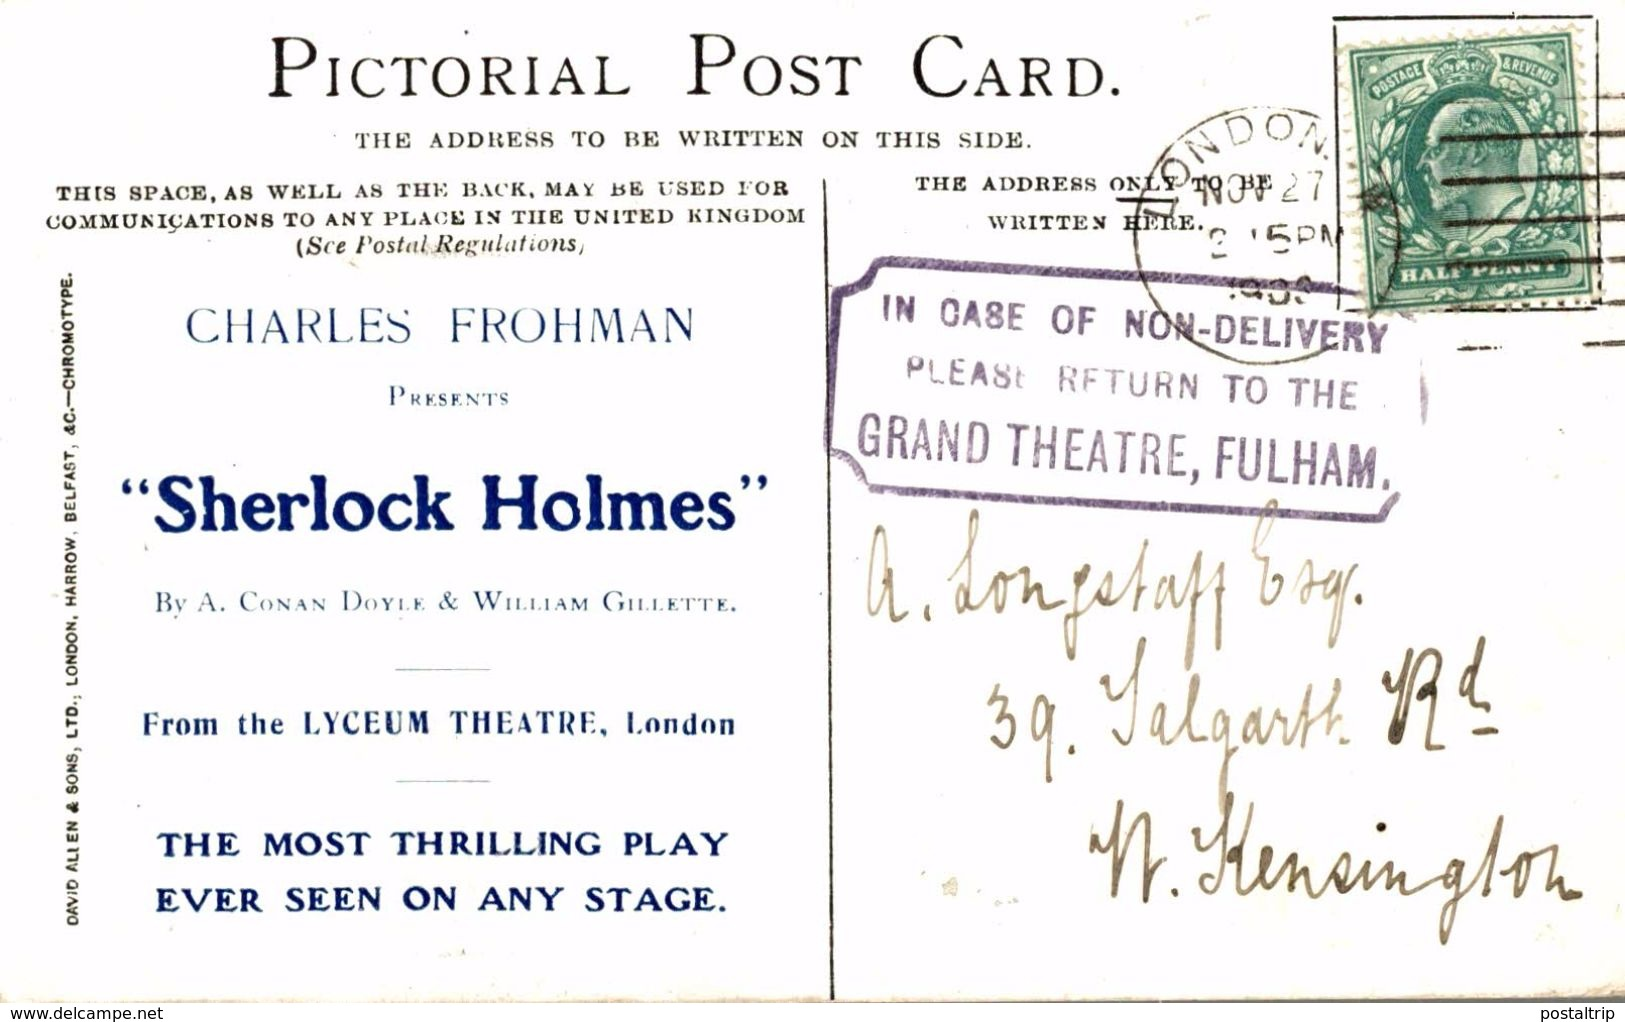 Grand Theatre Fulham  Get Your Hands Down Sherlock Holmes  London - Advertising